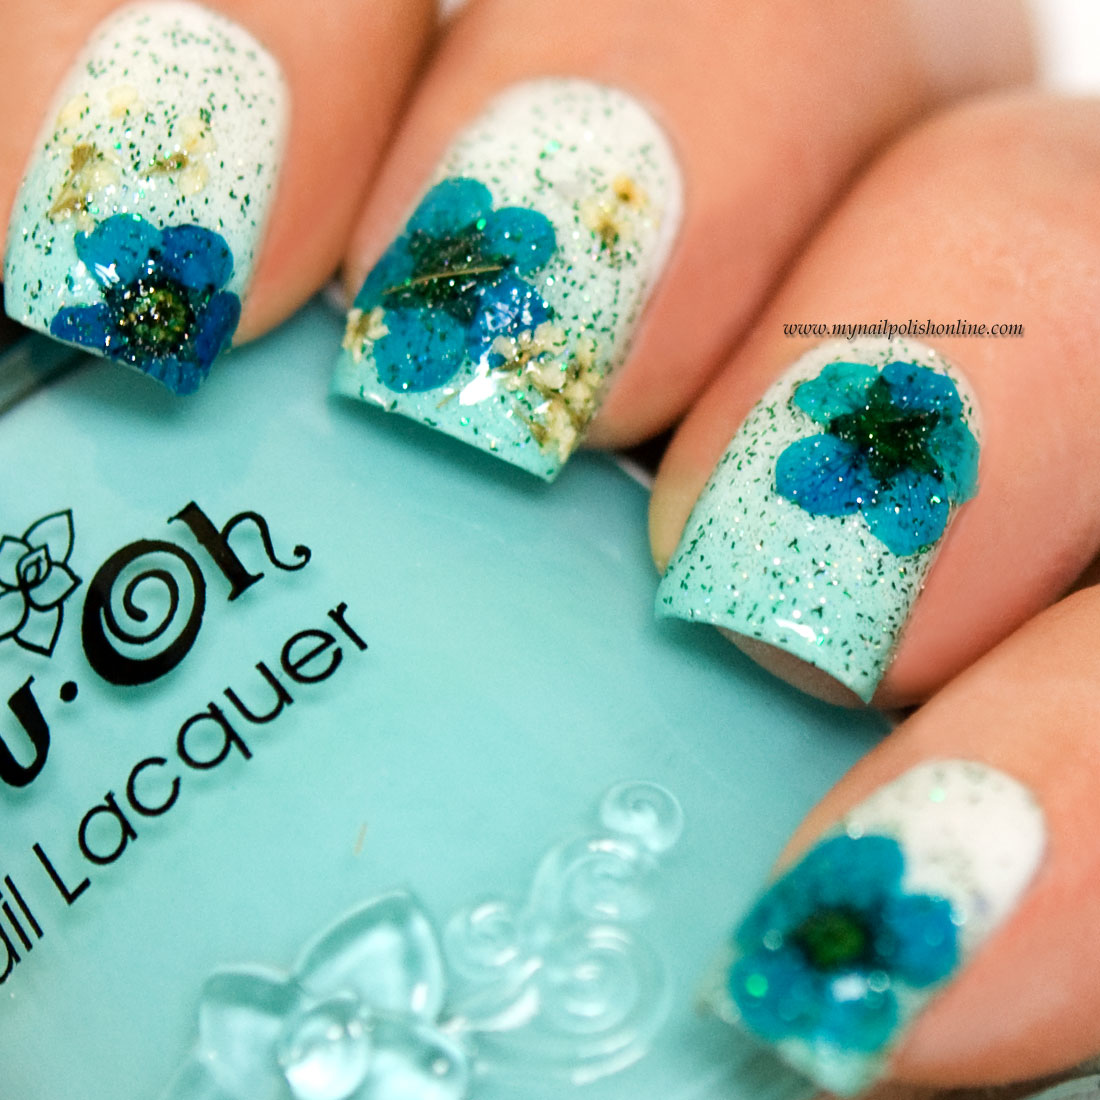 Nail art floral design with dry flowers my nail polish online nail art floral design with dry flowers prinsesfo Gallery